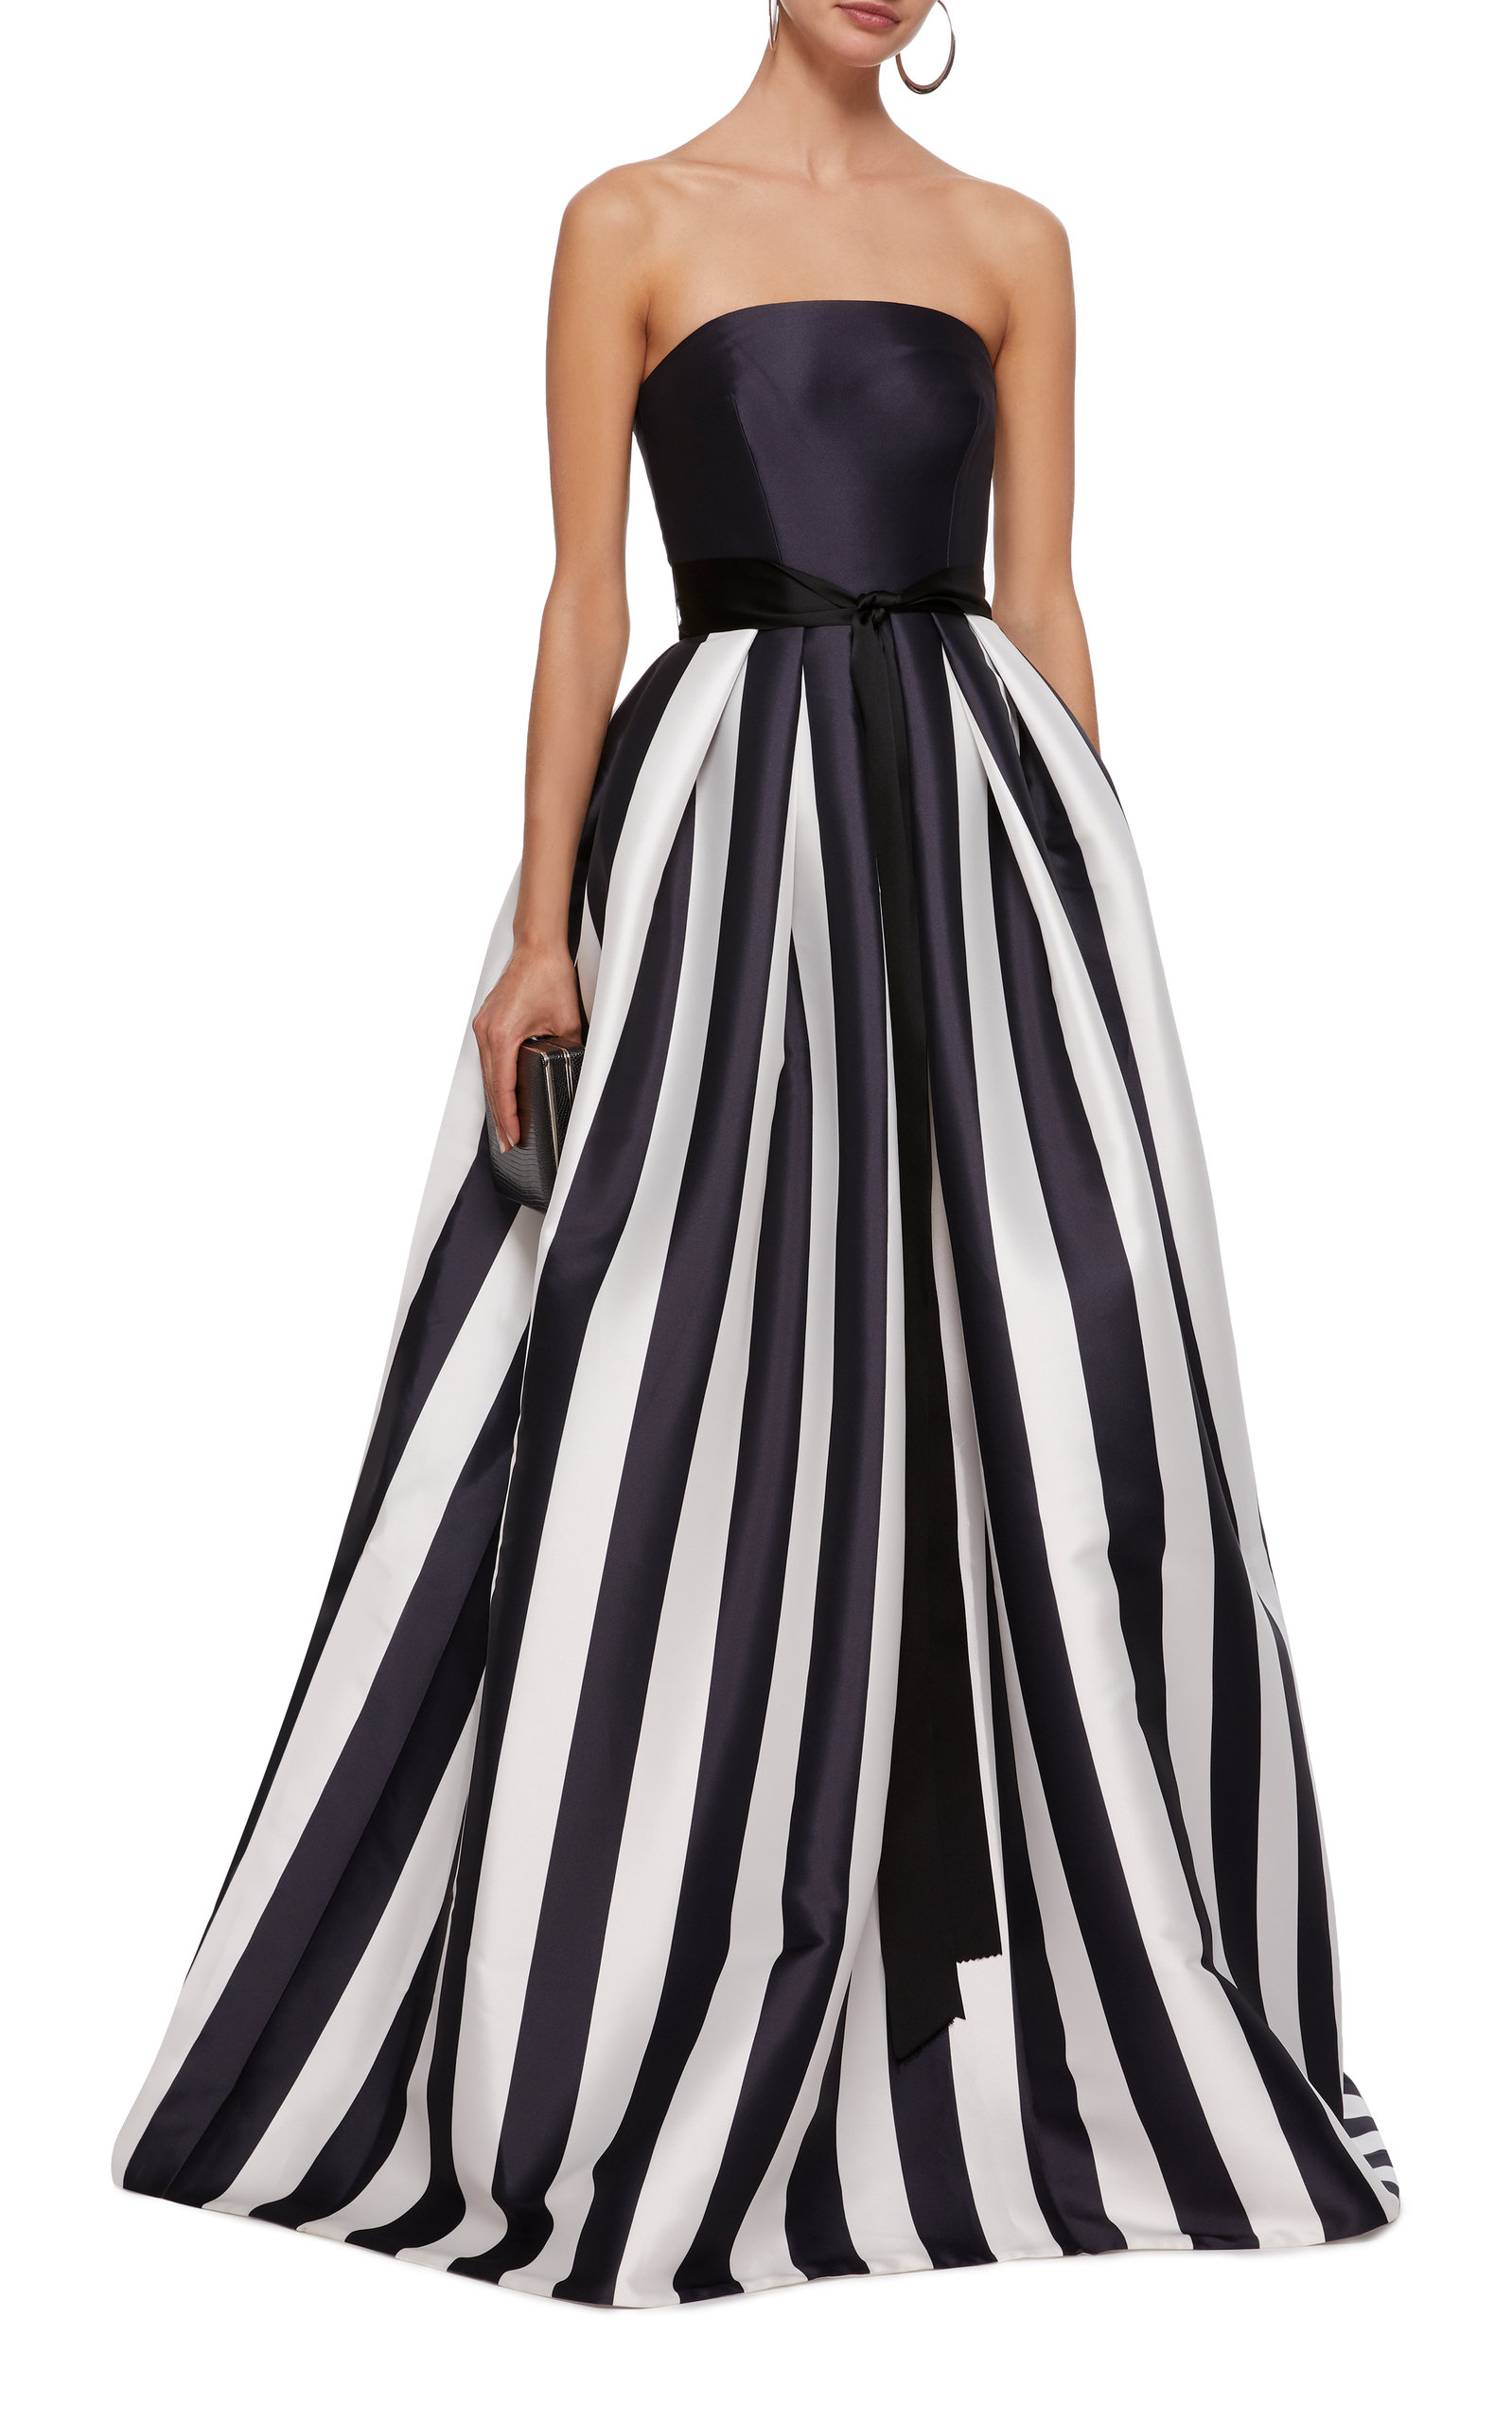 cc8684275b0 Strapless Striped Satin Ball Gown by MONIQUE LHUILLIER Now Available on  Moda Operandi